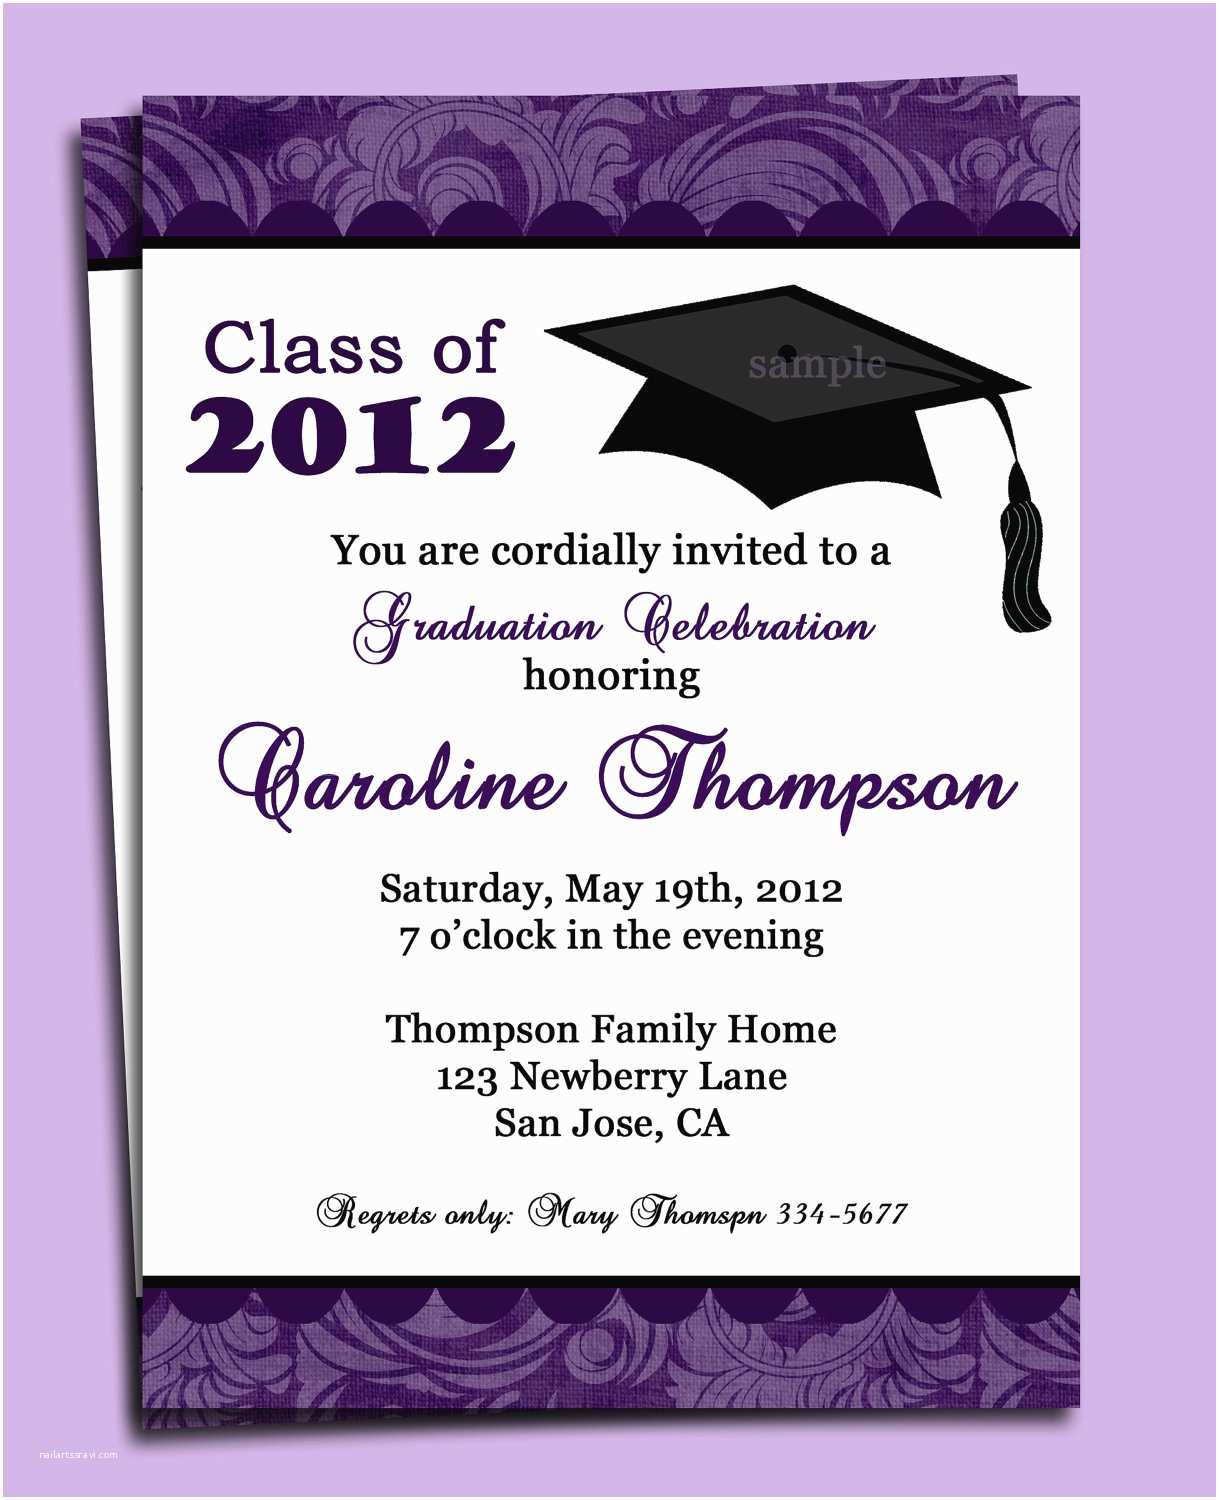 Make Your Own Graduation Invitations top Pilation High School Graduation Invitations